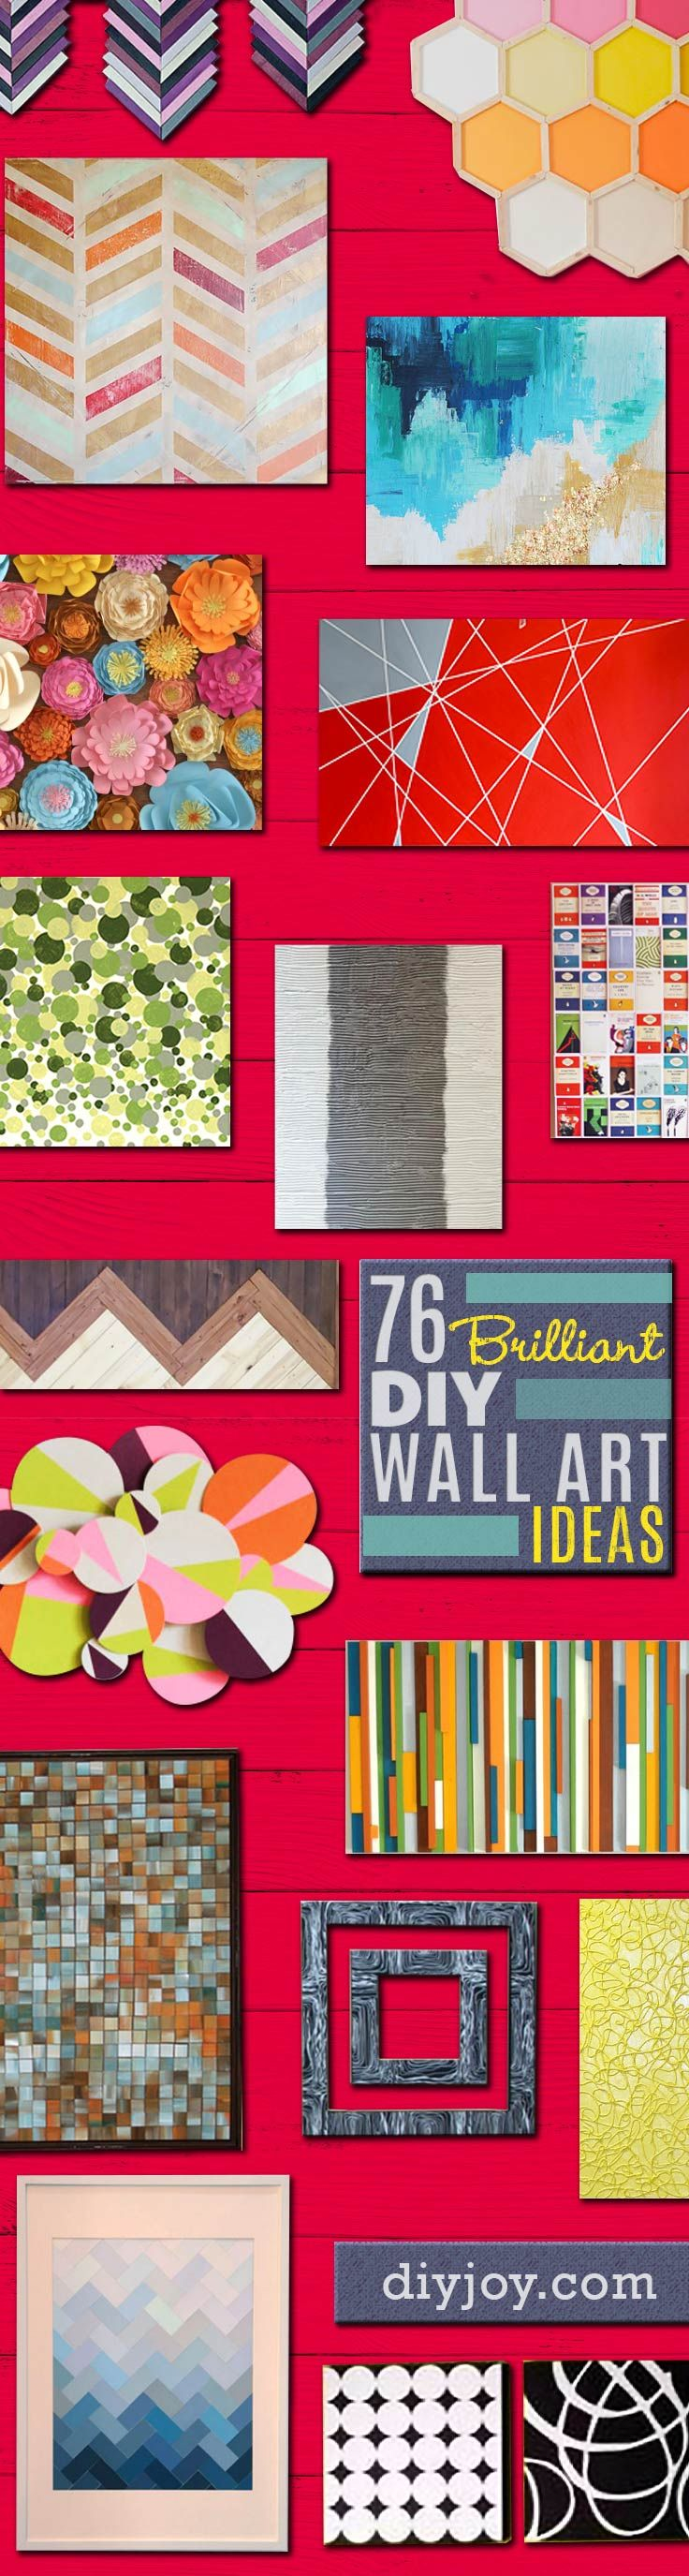 Do It Yourself Home Decorating Ideas: 76 Brilliant DIY Wall Art Ideas For Your Blank Walls